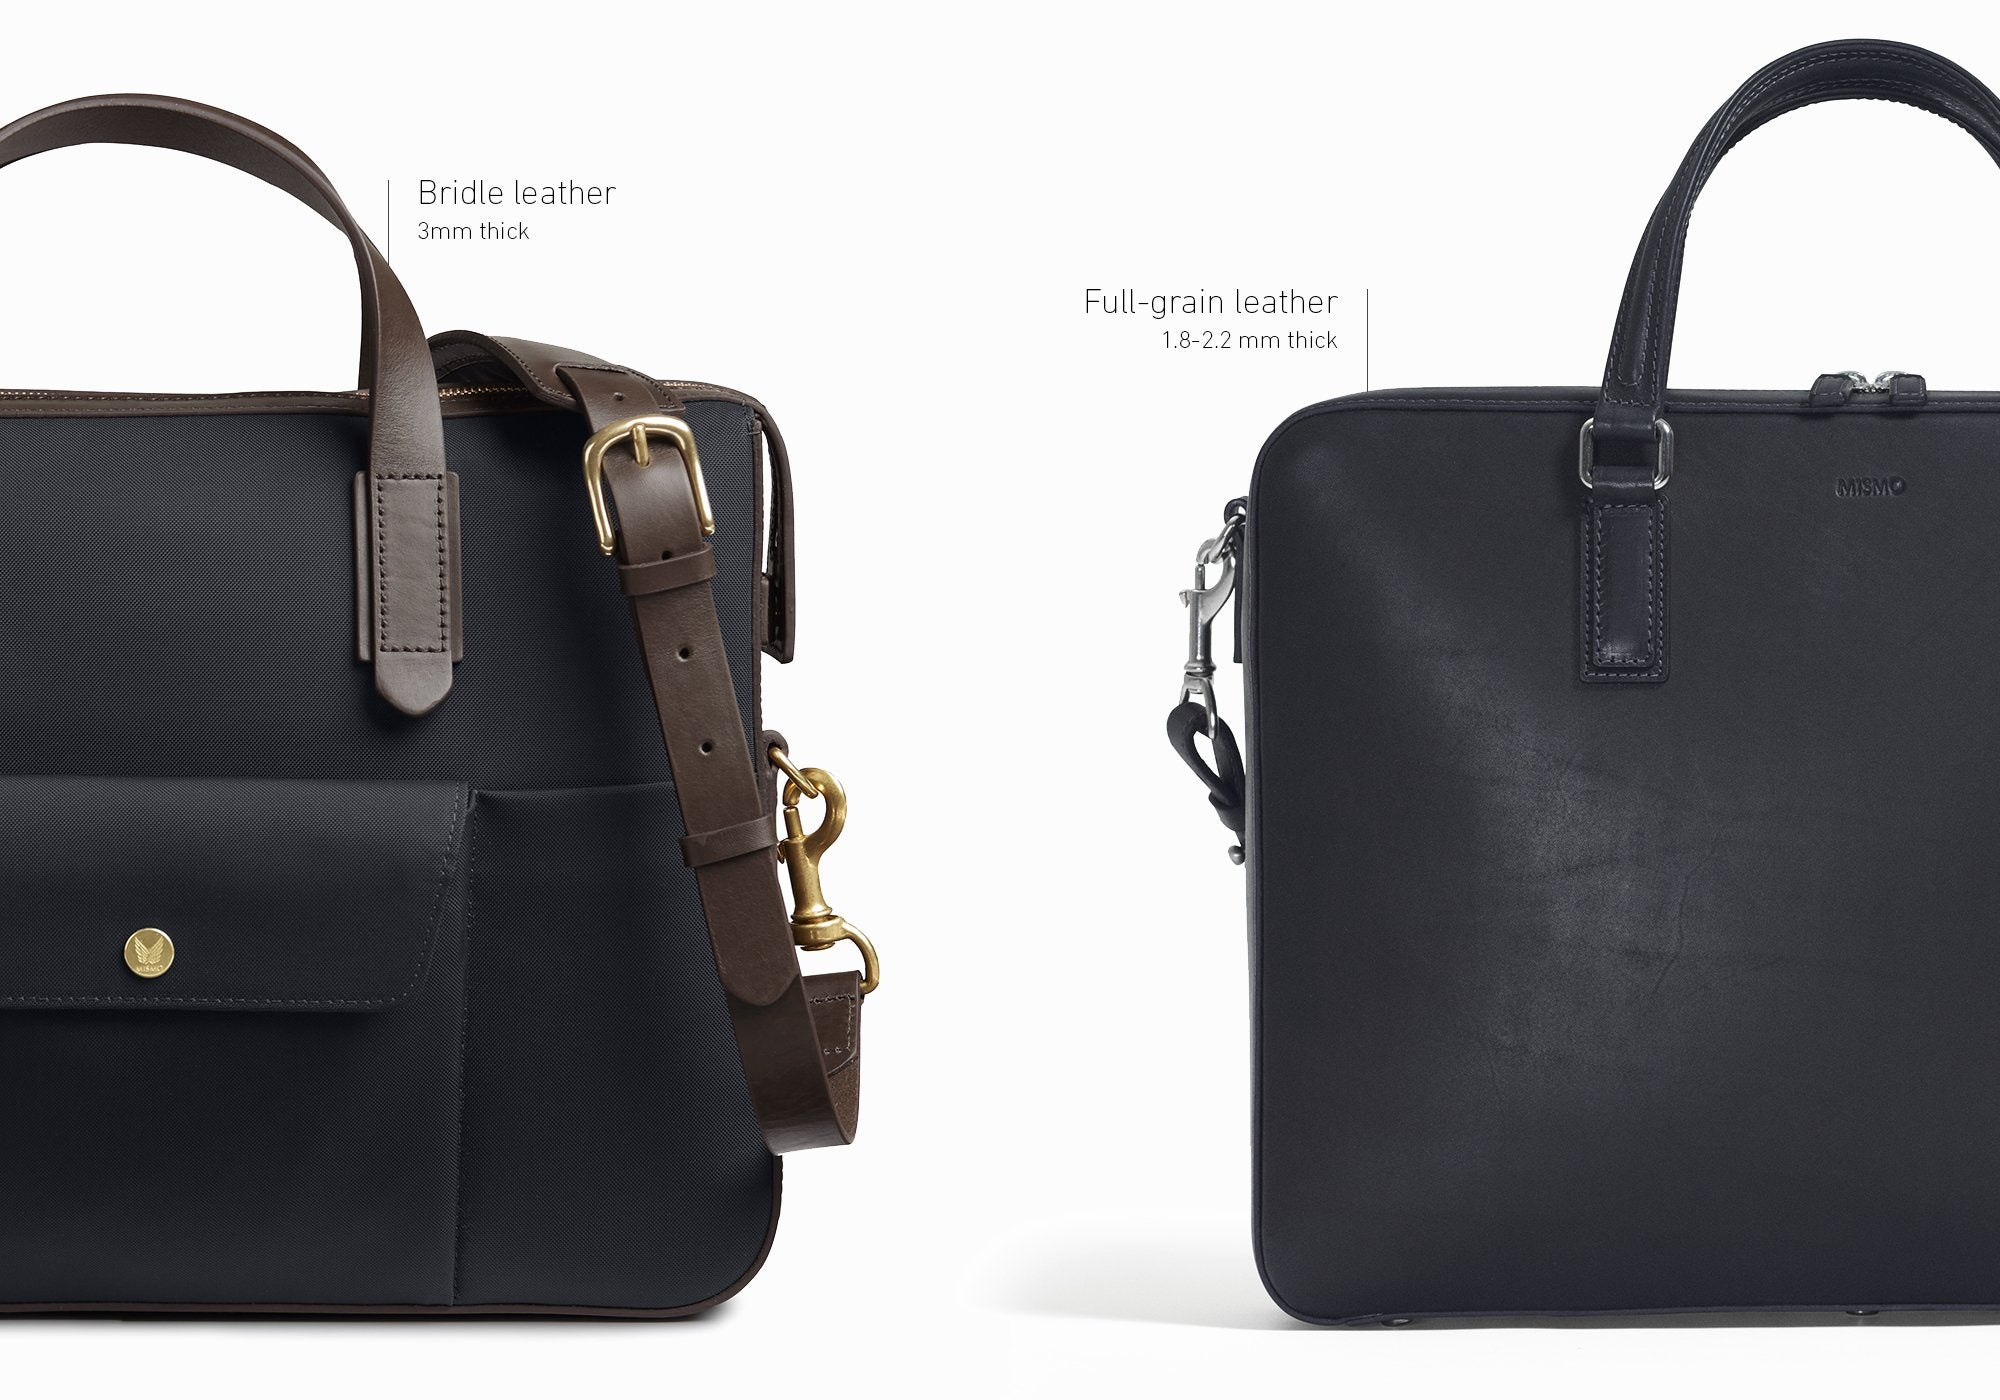 Mismo navy nylon briefcase with vegetable-tanned bridle leather and Mismo full-grain leather briefcase in black